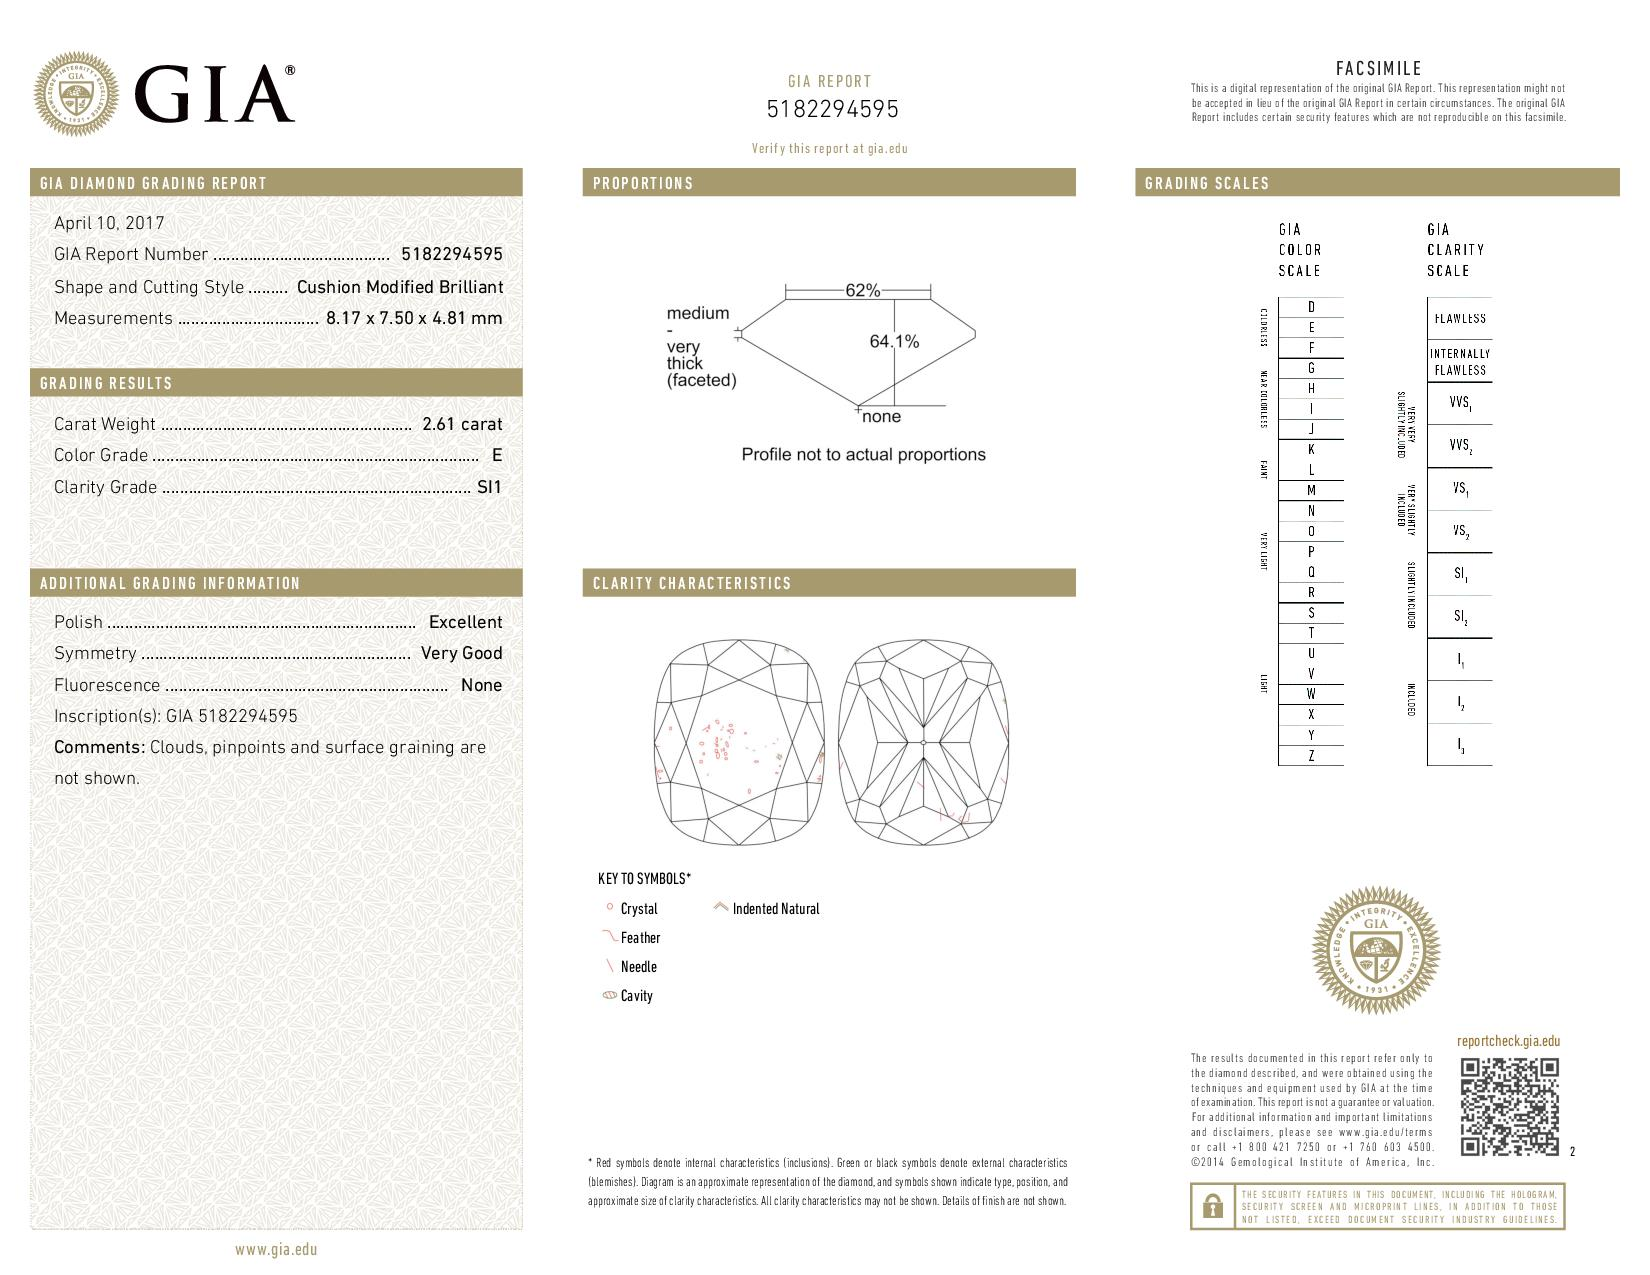 This is a 2.61 carat cushion shape, E color, SI1 clarity natural diamond accompanied by a GIA grading report.